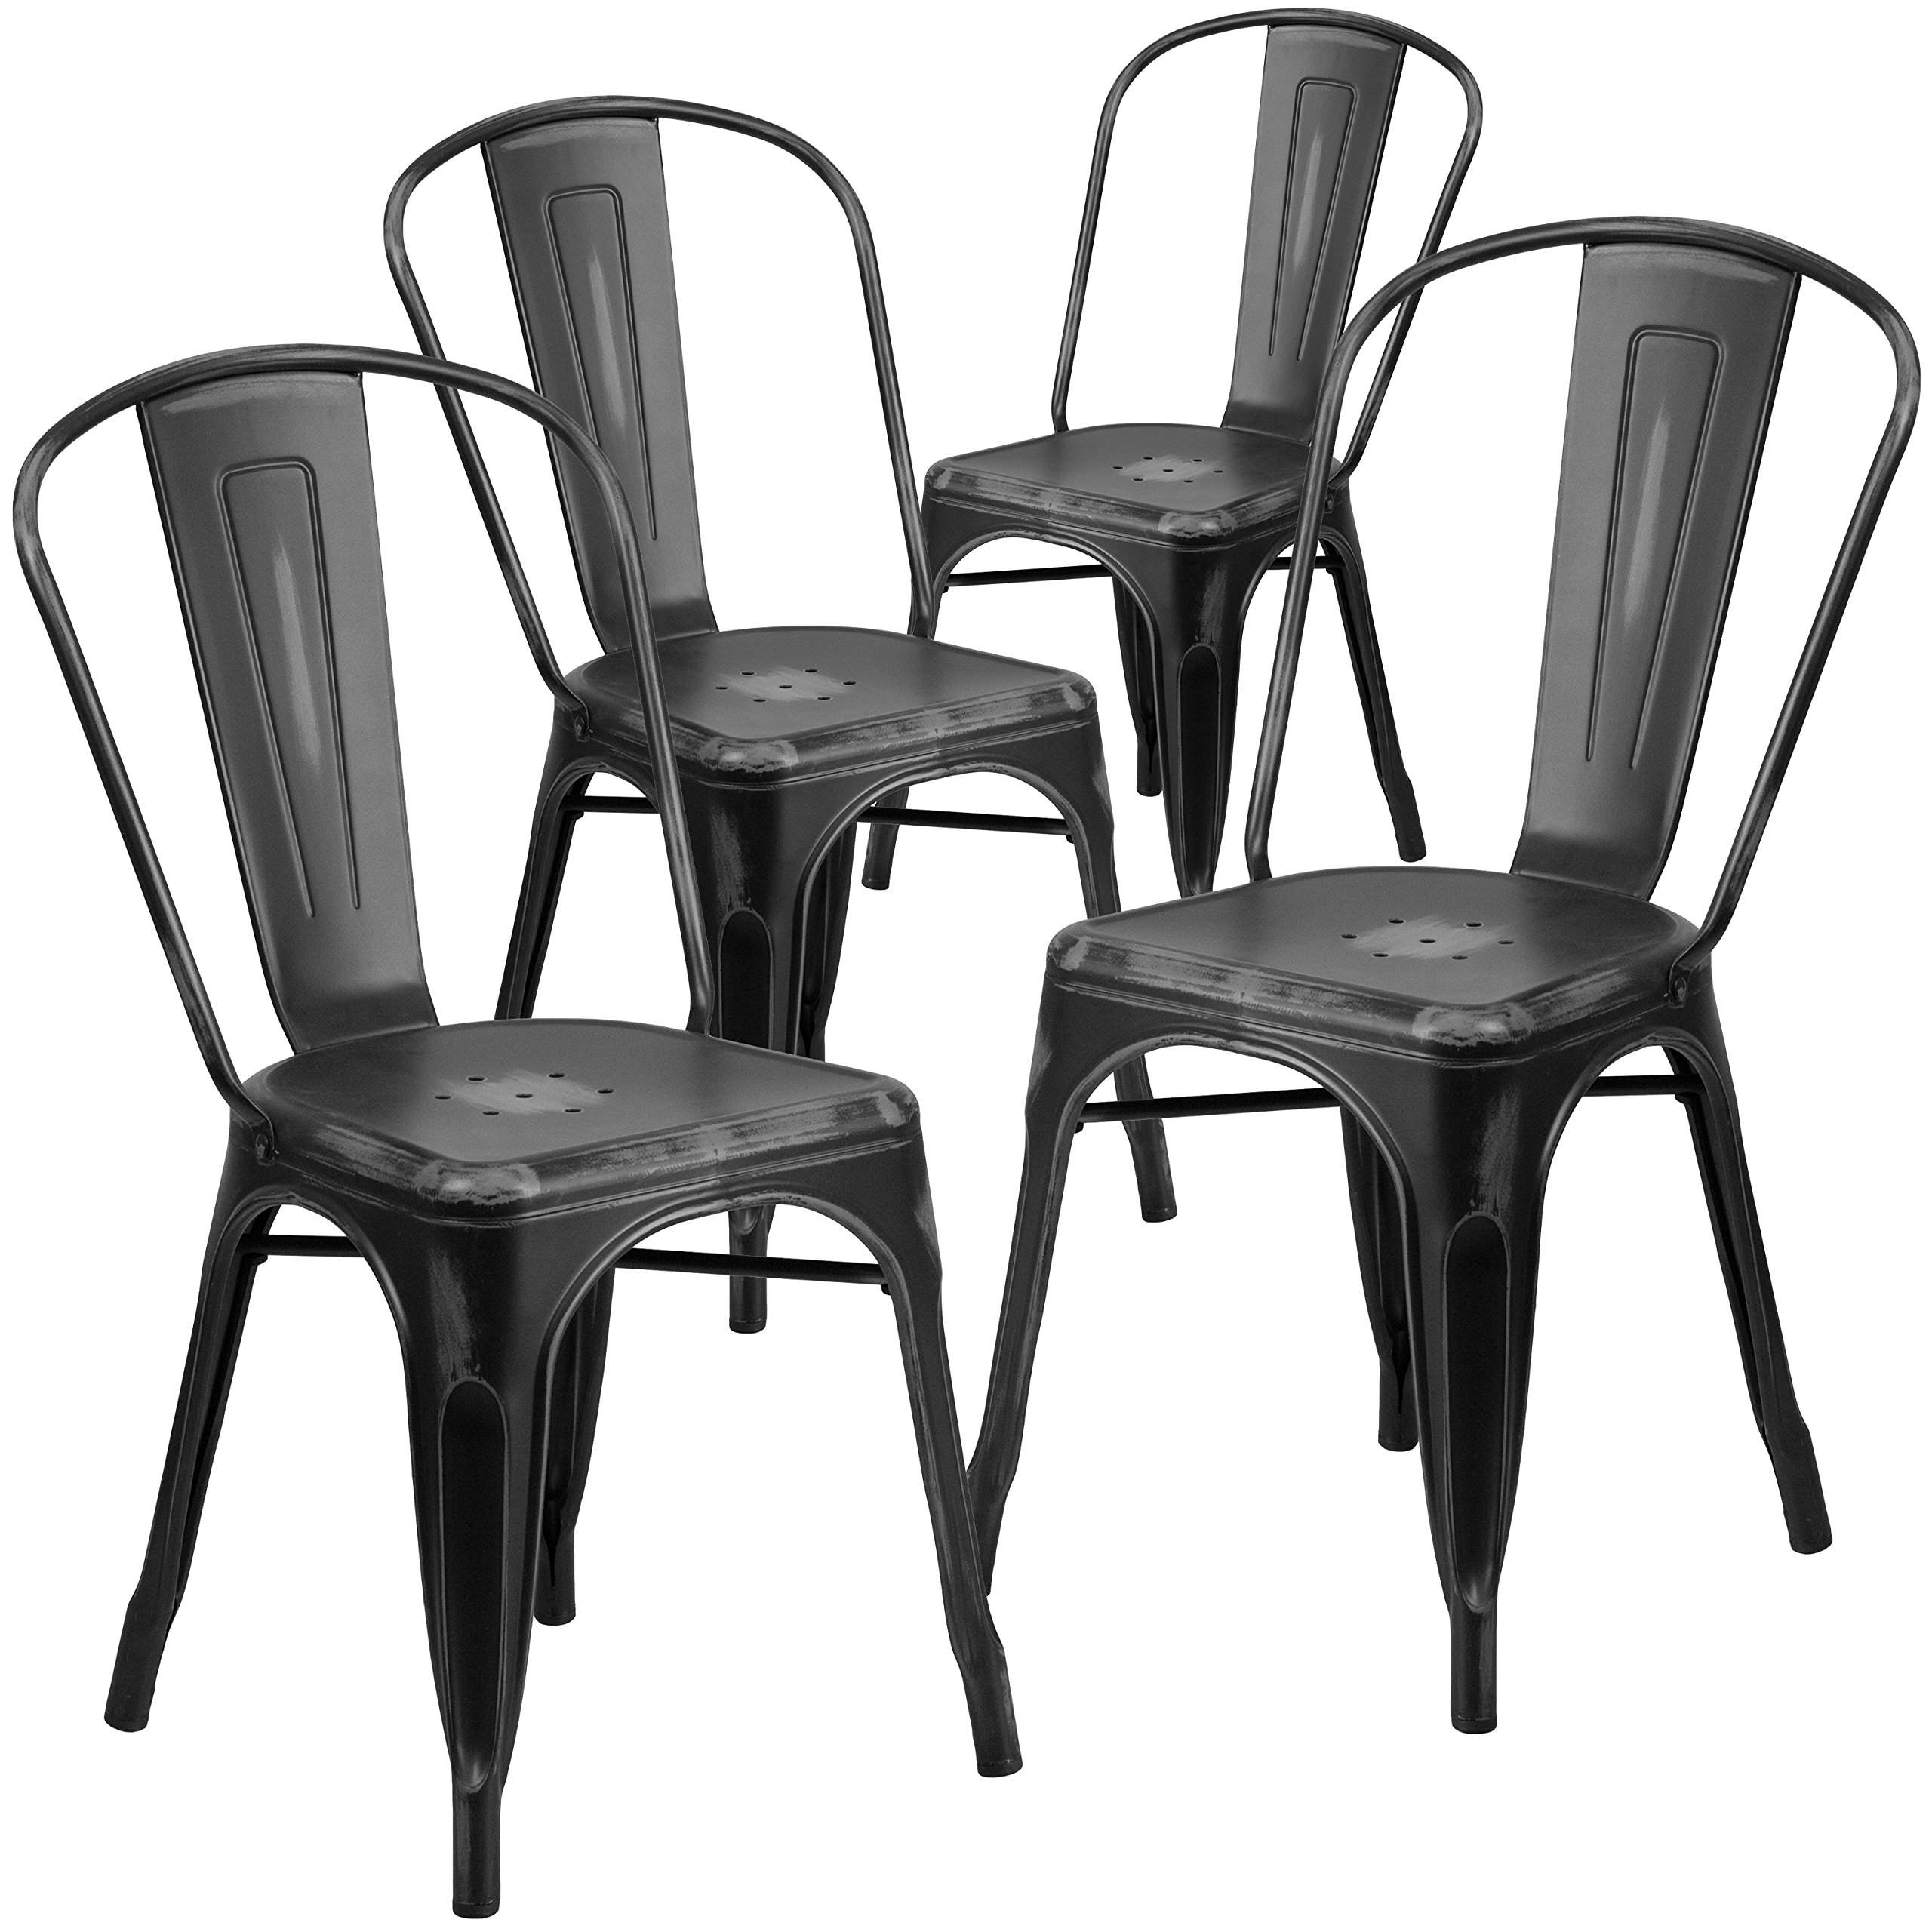 Flash Furniture 4 Pk. Distressed Black Metal Indoor-Outdoor Stackable Chair by Flash Furniture